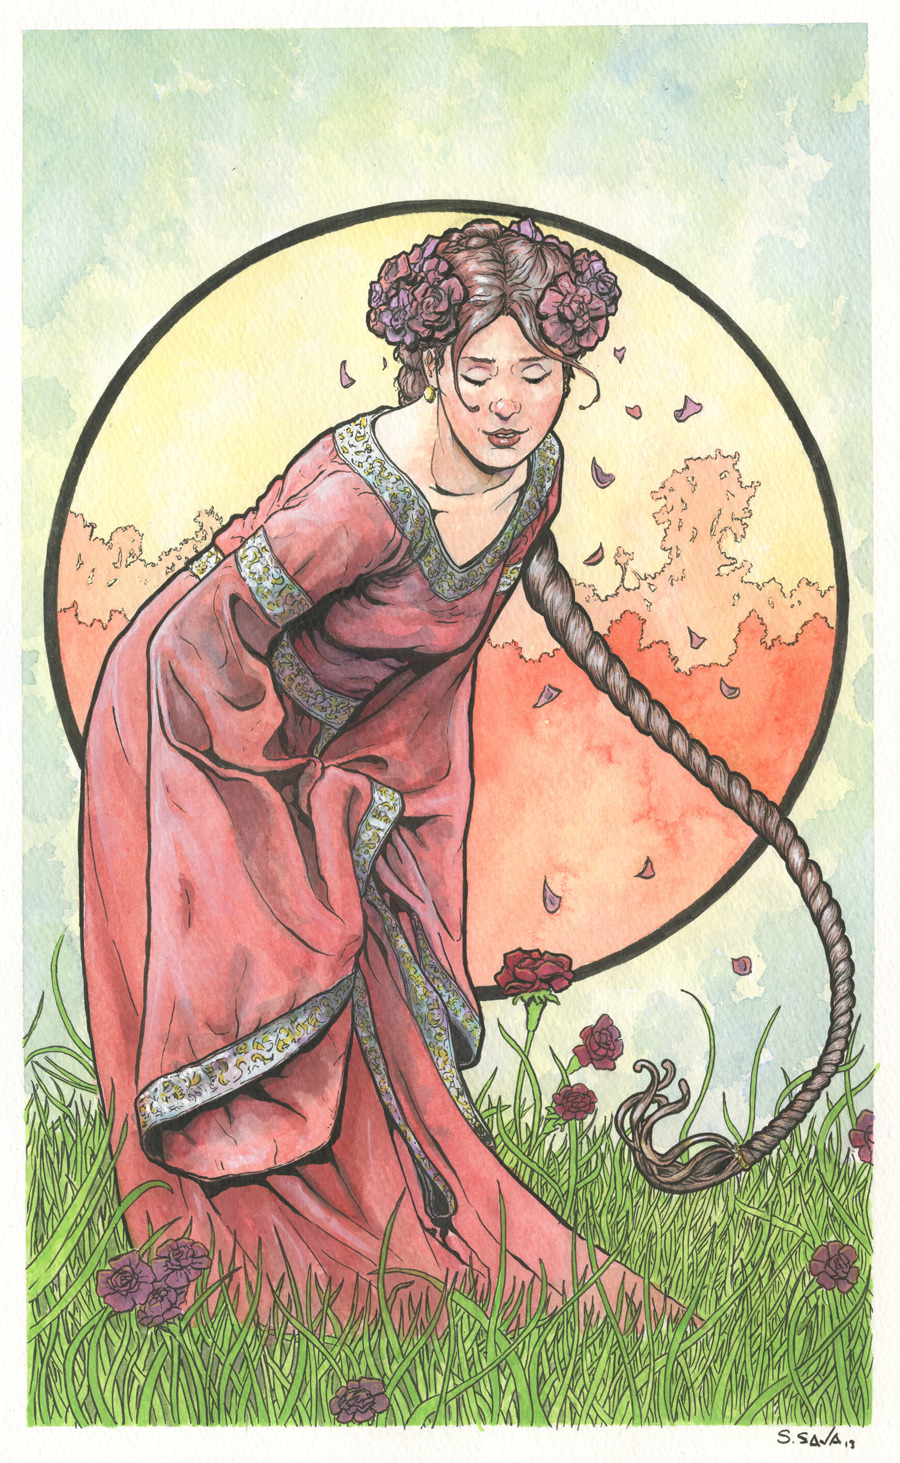 This is the 14th Art Nouveau/Alphonse Mucha inspired watercolor painting in a series I'm producing.The painting is on 12x18 inch Strathmore Cold Press watercolor paper. Done in watercolors and ink.Photo reference/inspiration from Magikstock (who temporarily has their stock photos offline)…http://magikstock.deviantart.com/Original paintings can be purchased here…http://www.etsy.com/shop/ScottChristianSava?section_id=11821287and Limited Edition Prints can be purchased here…http://www.etsy.com/shop/ScottChristianSava?section_id=11821297Thanks for looking!Scott